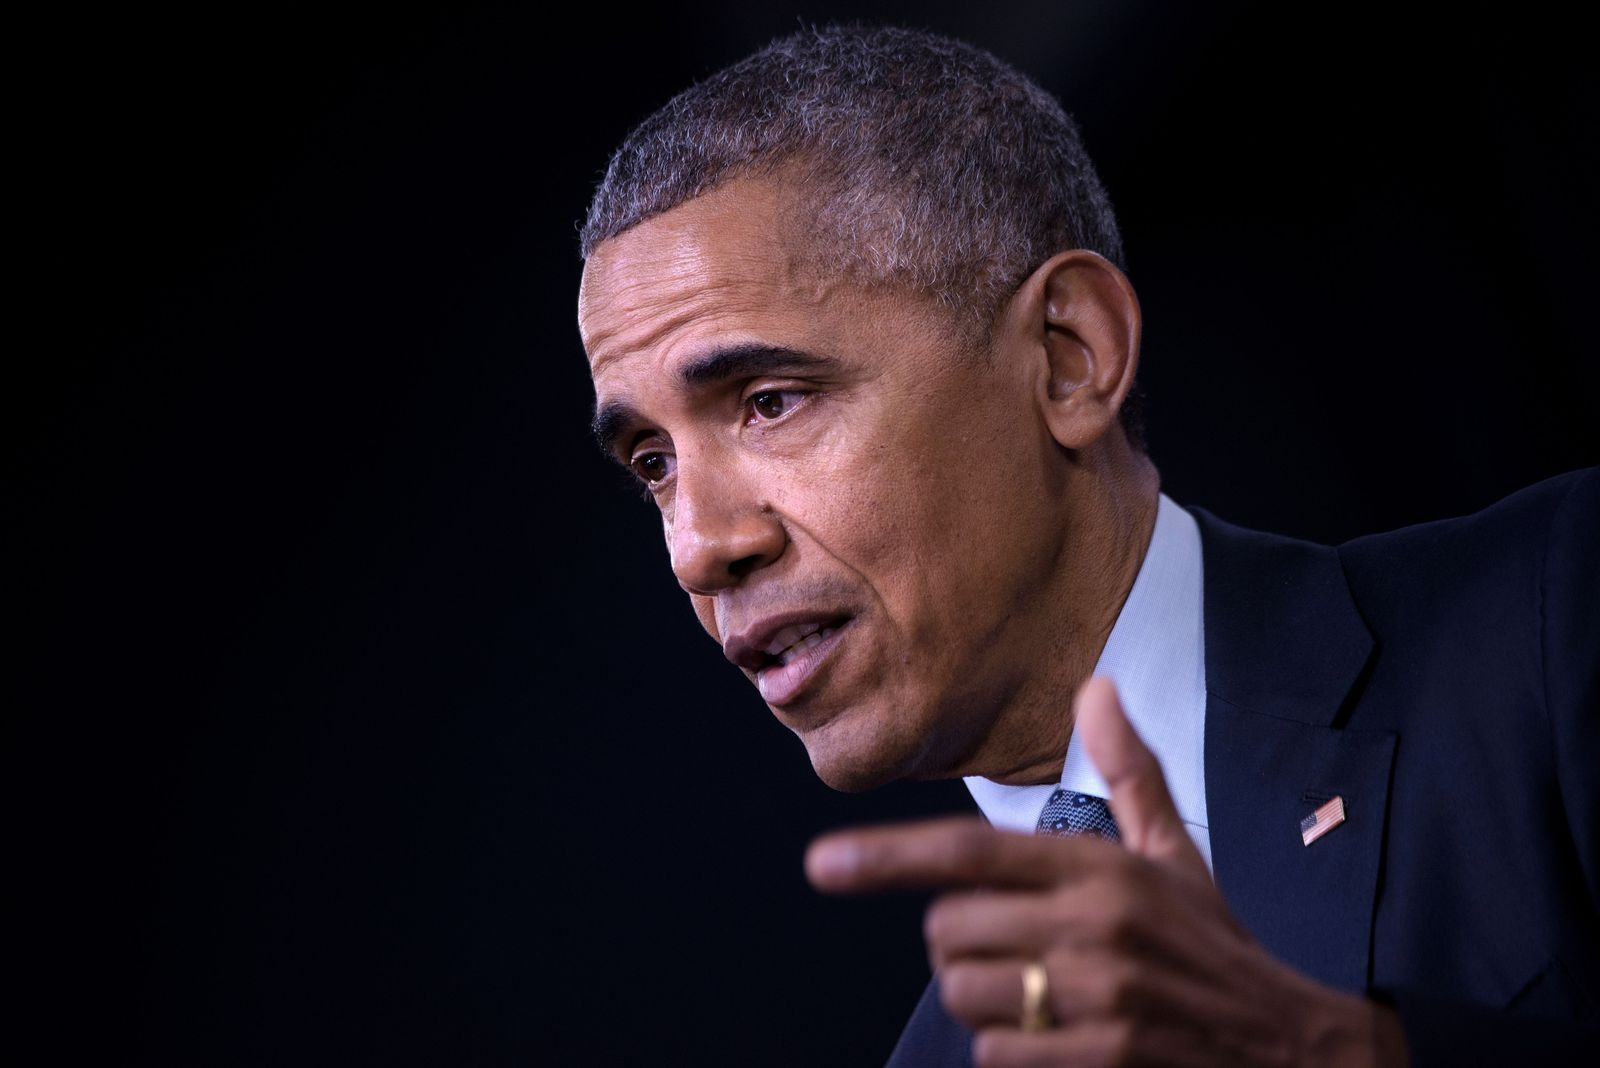 FILES-US-ENVIRONMENT-CONSERVATION-OBAMA